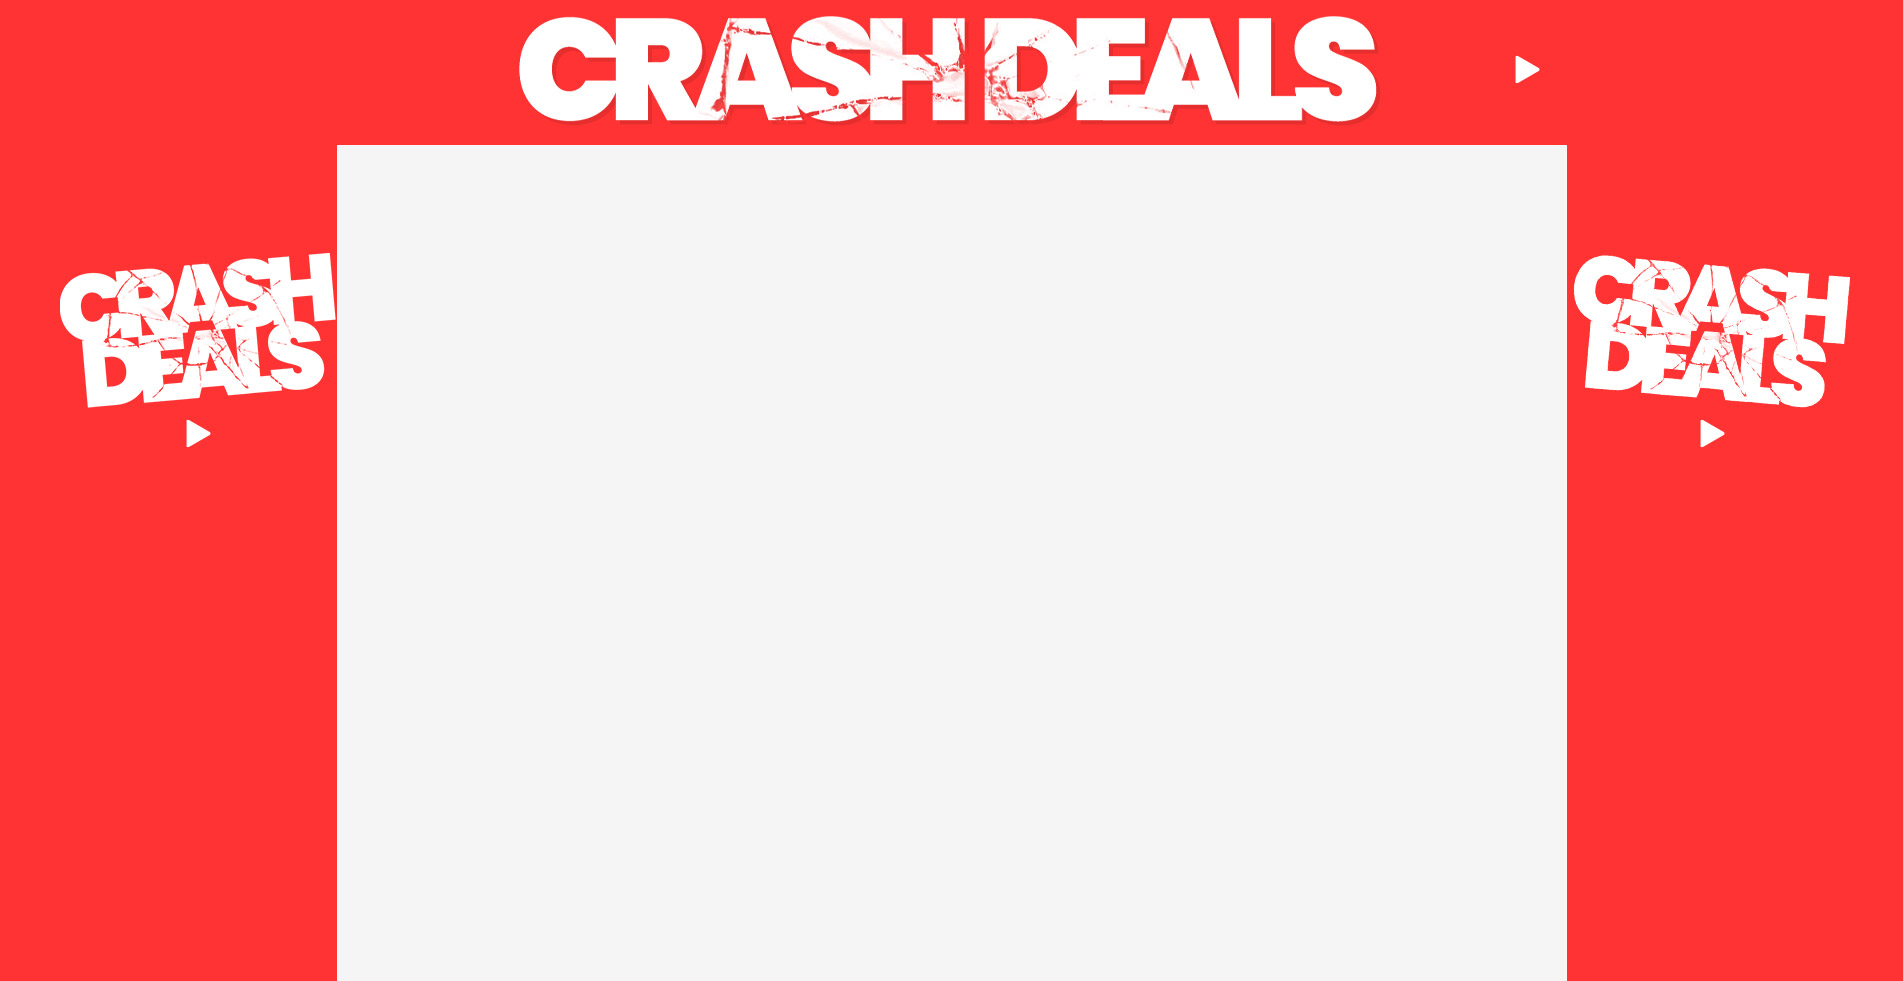 CRASH DEALS VOUCHER CODES